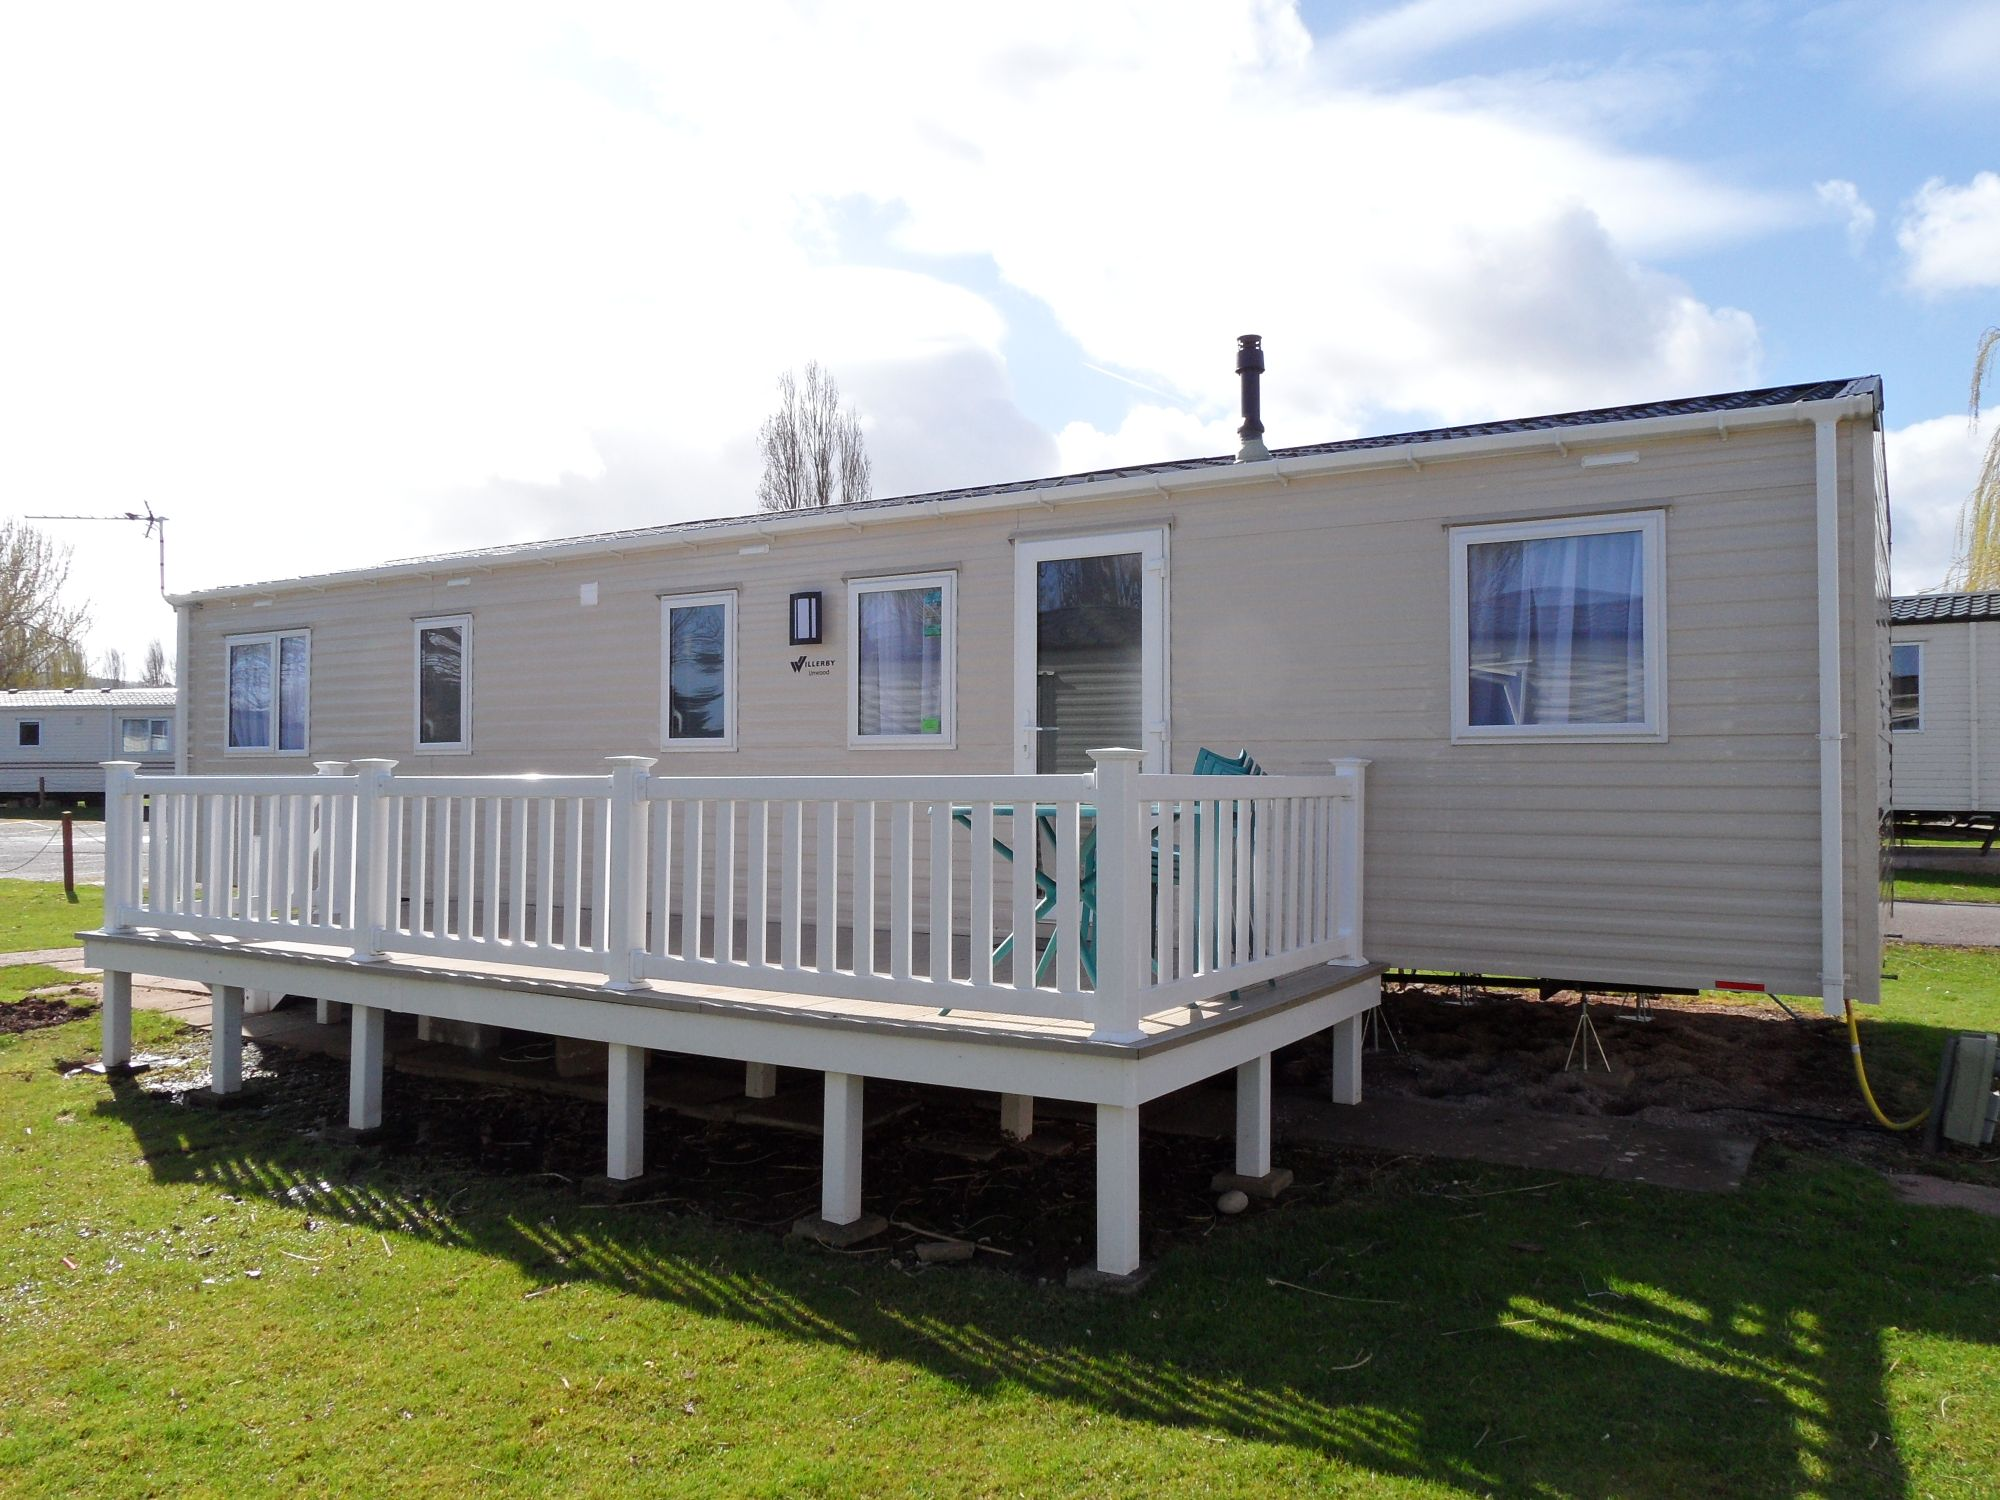 Linwwod 4 Bedroom 8/10 Berth Caravan